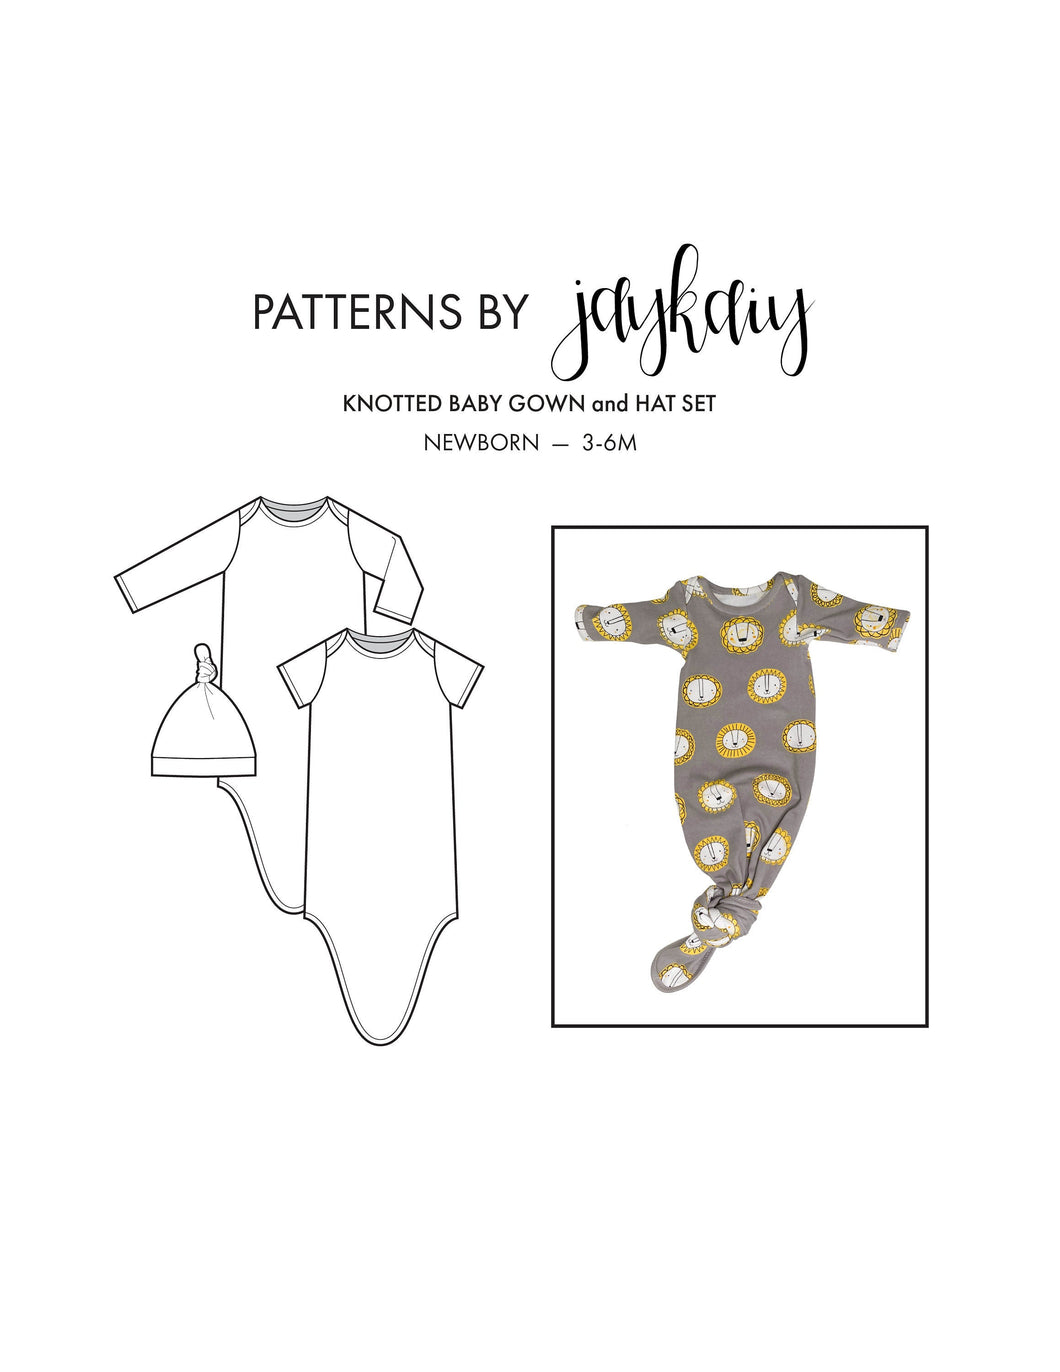 Knotted Baby Gown + Hat Set Sewing Pattern with tutorial— Newborn to 3-6M